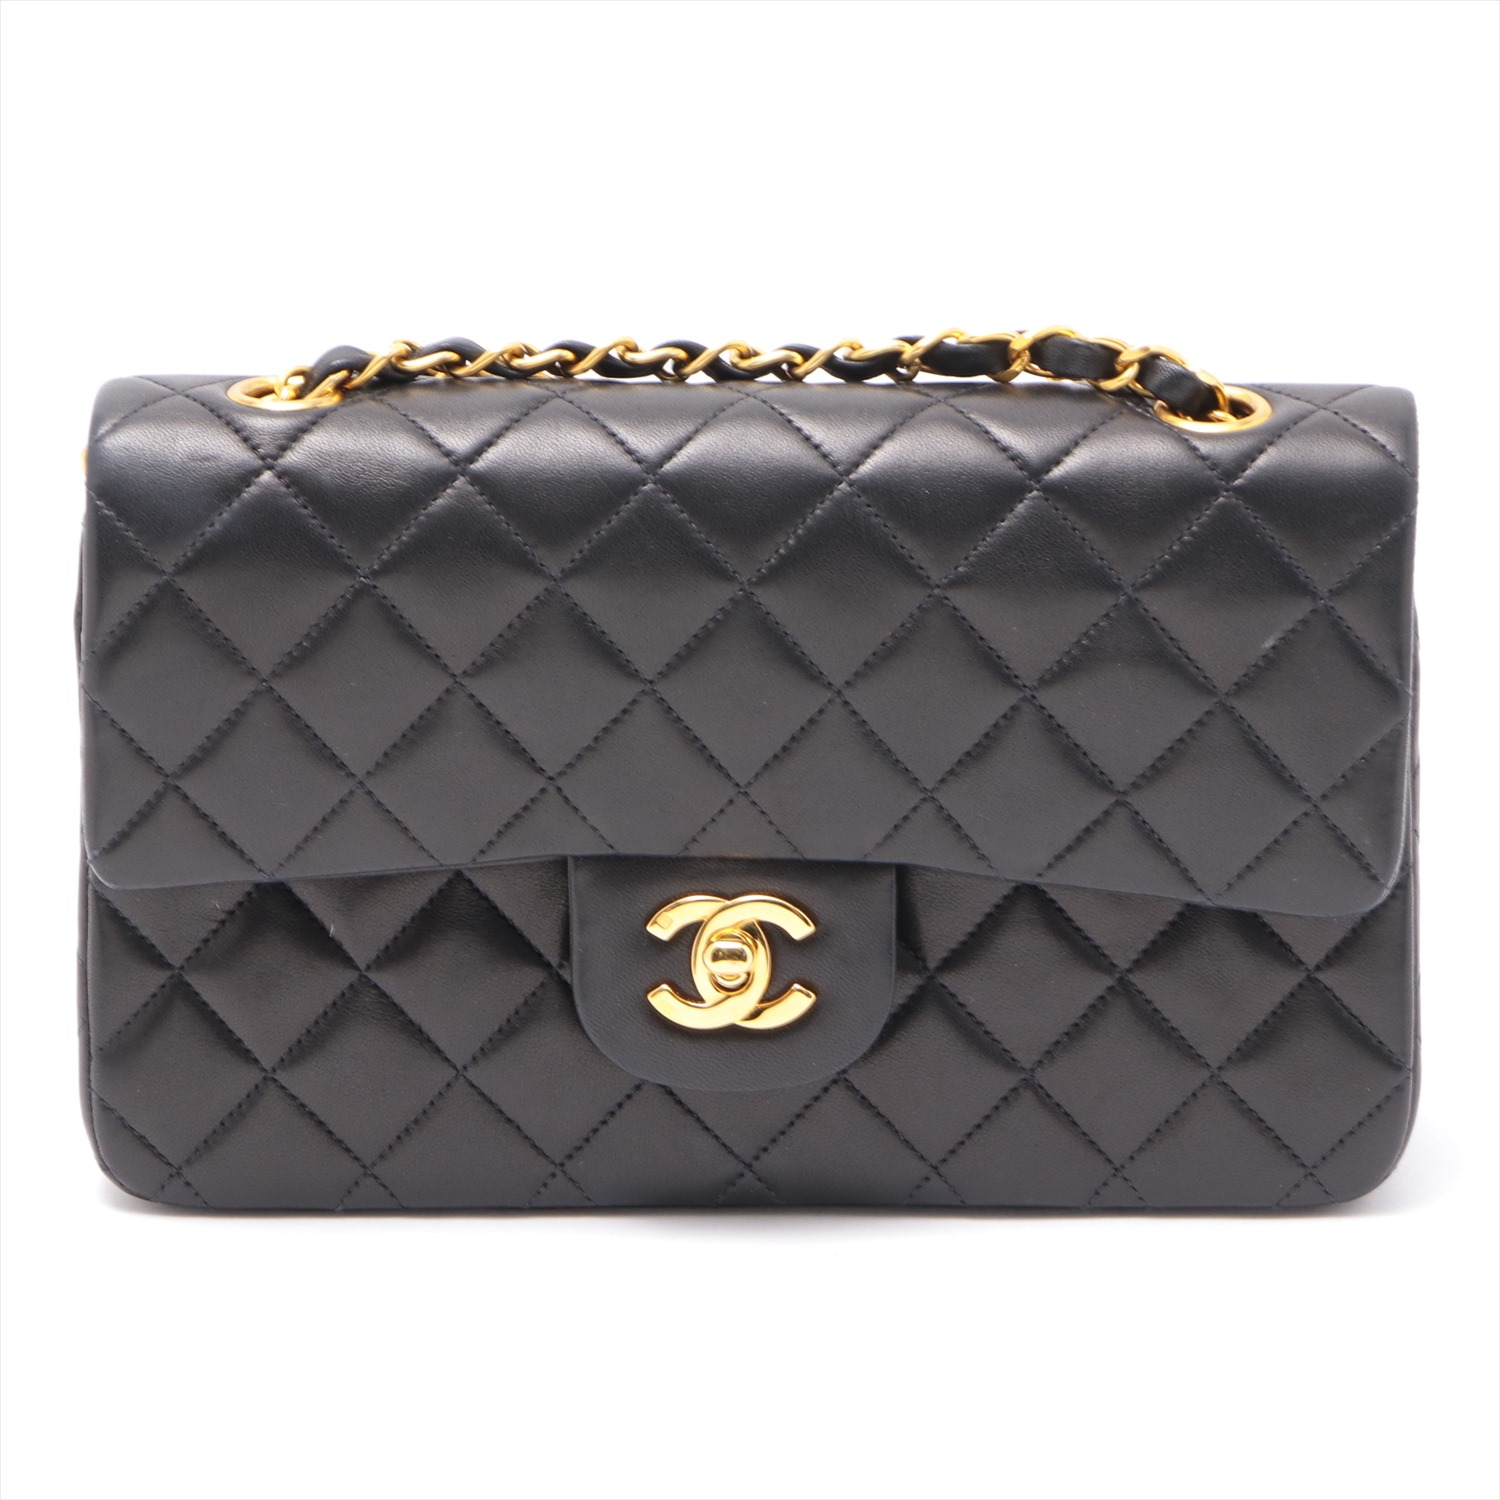 [Used goods] Chanel Matorasse lambskin double flap double chain Bag Black Gold Hardware